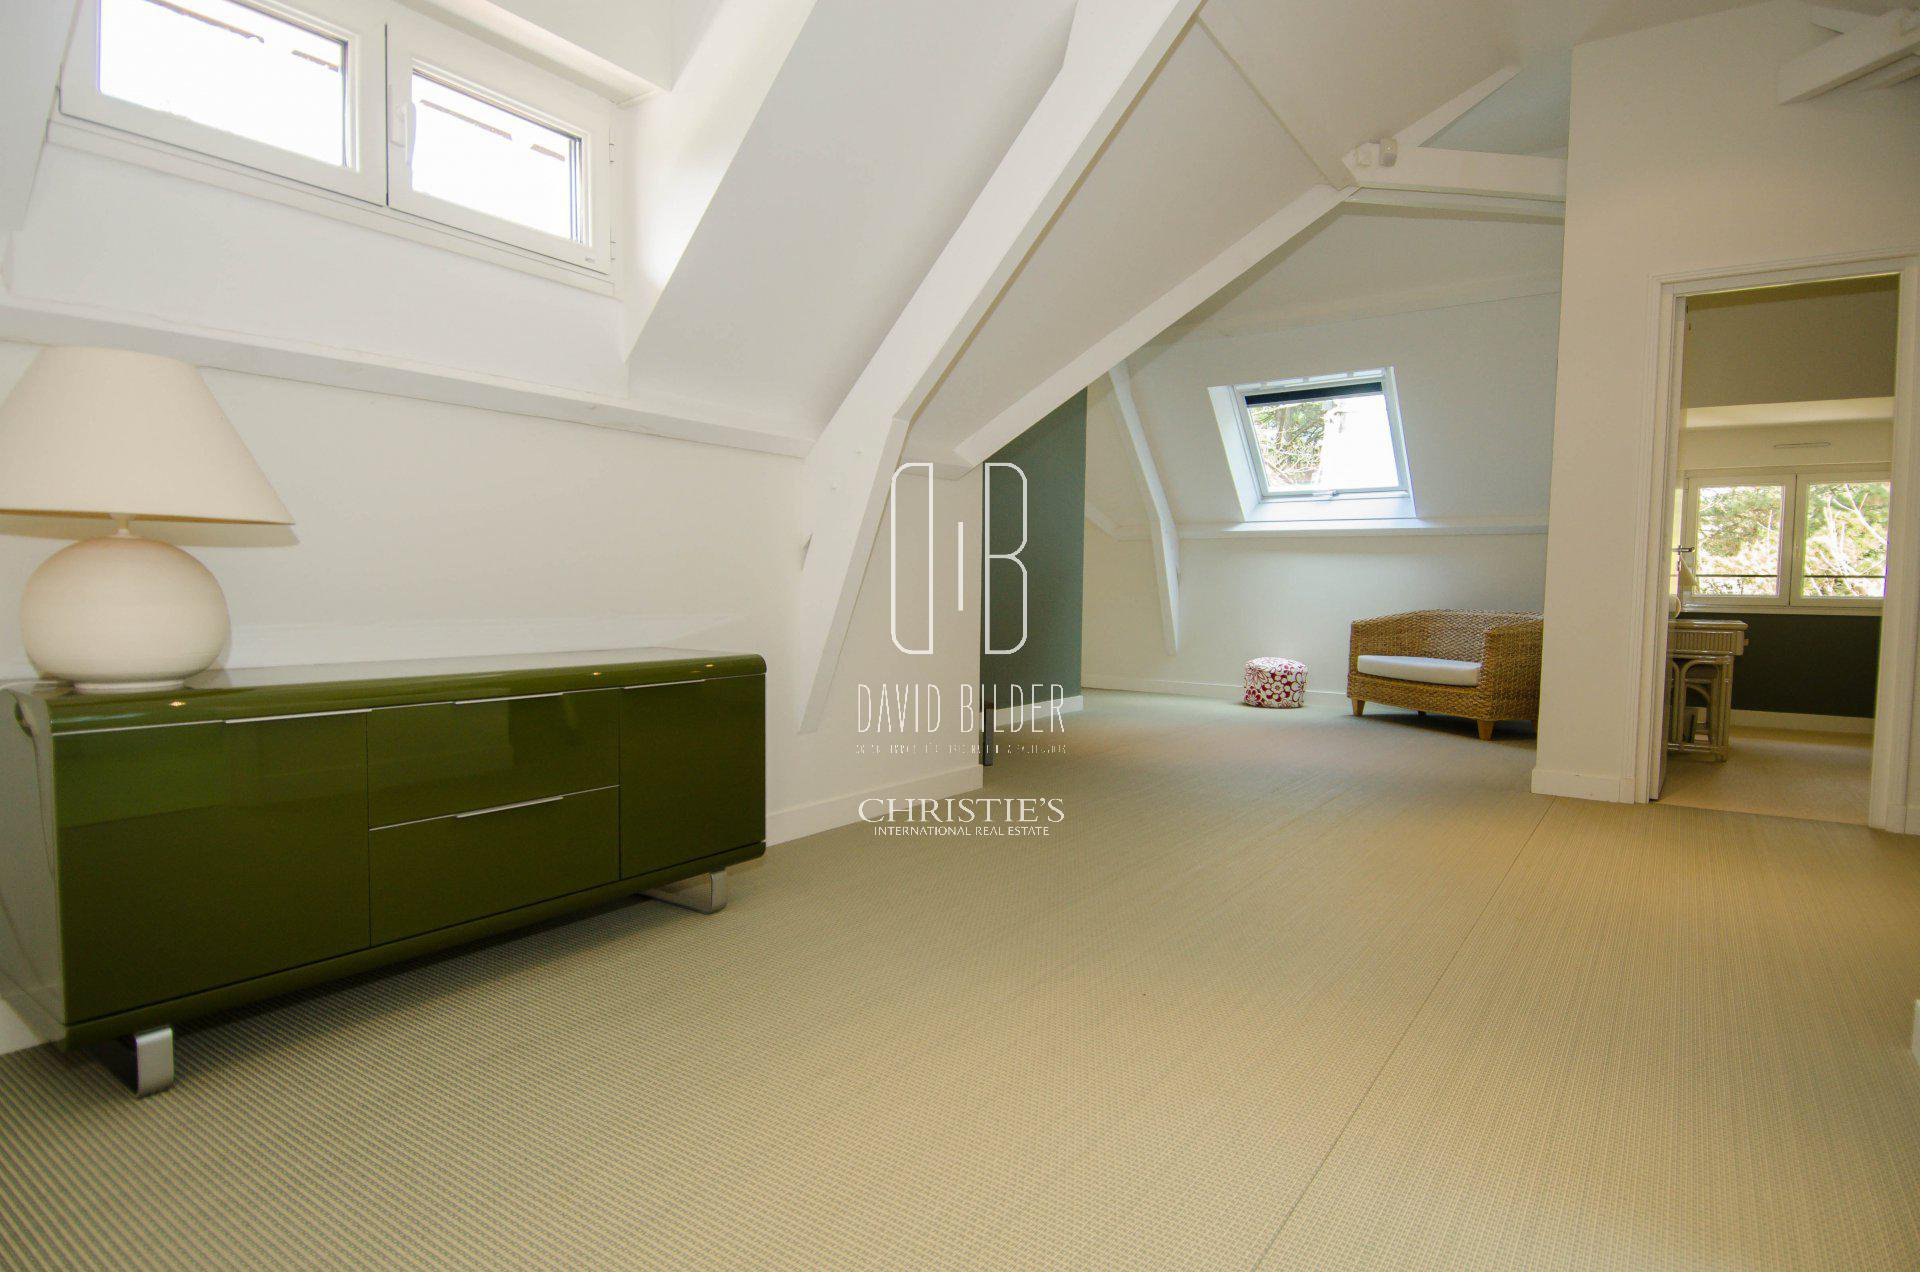 NANTES - 10mins from the center - Exceptional property